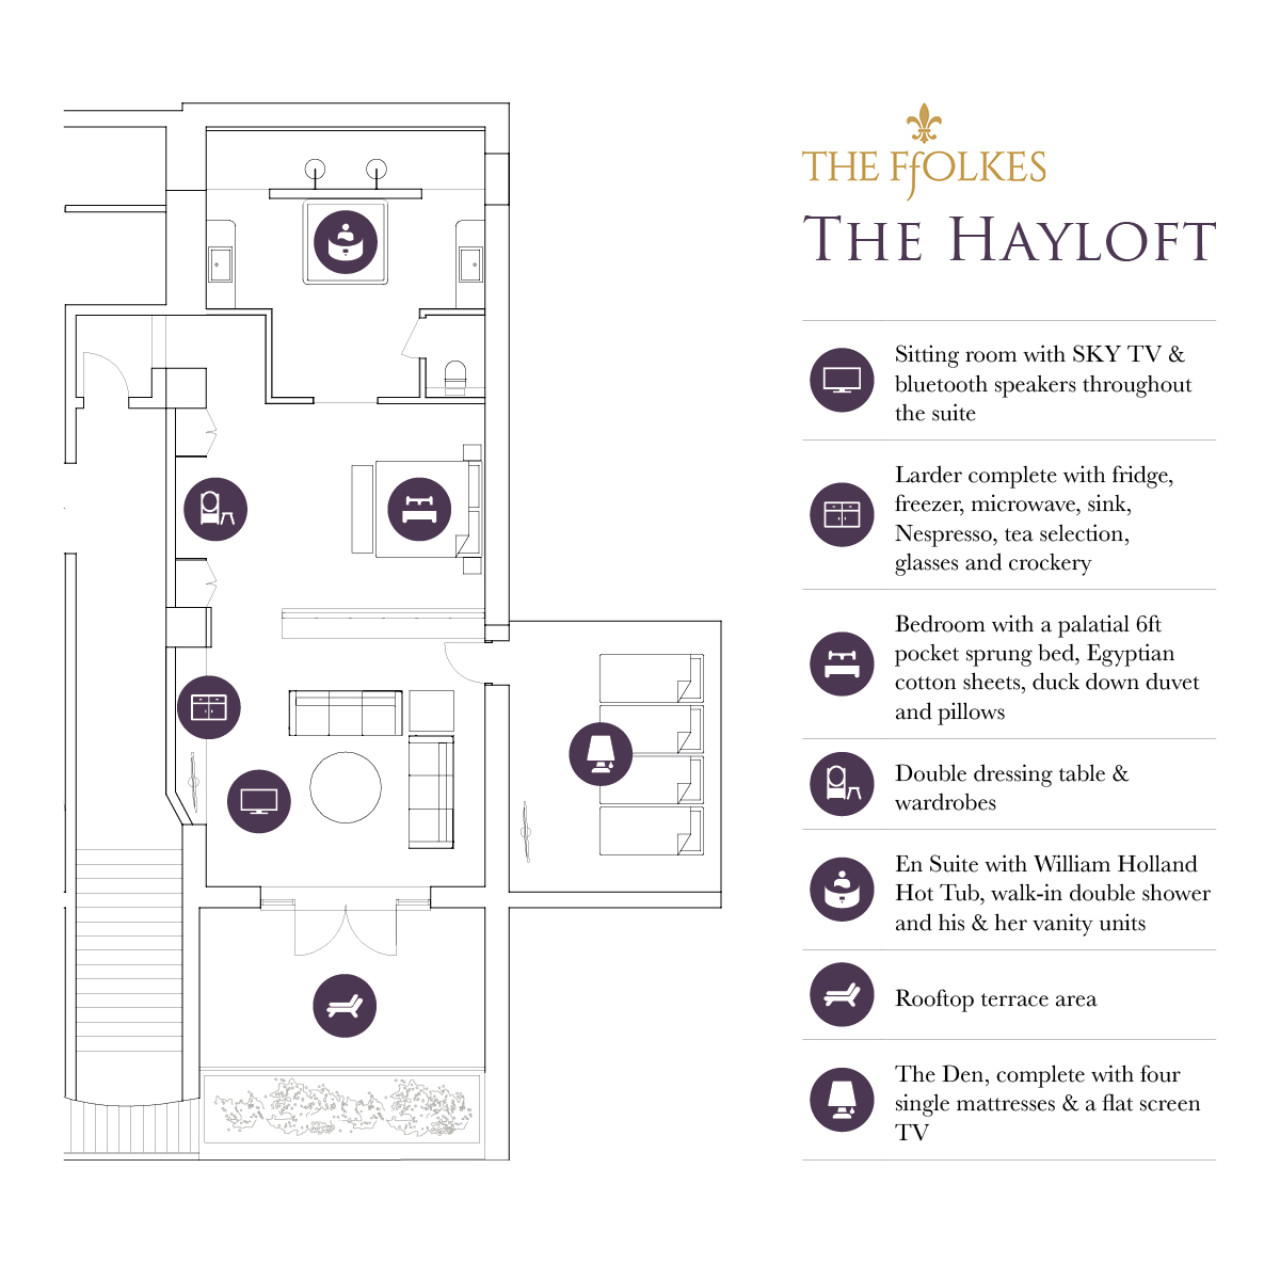 Wr Wr The Ffolkes The Hayloft Floorplan Social Square